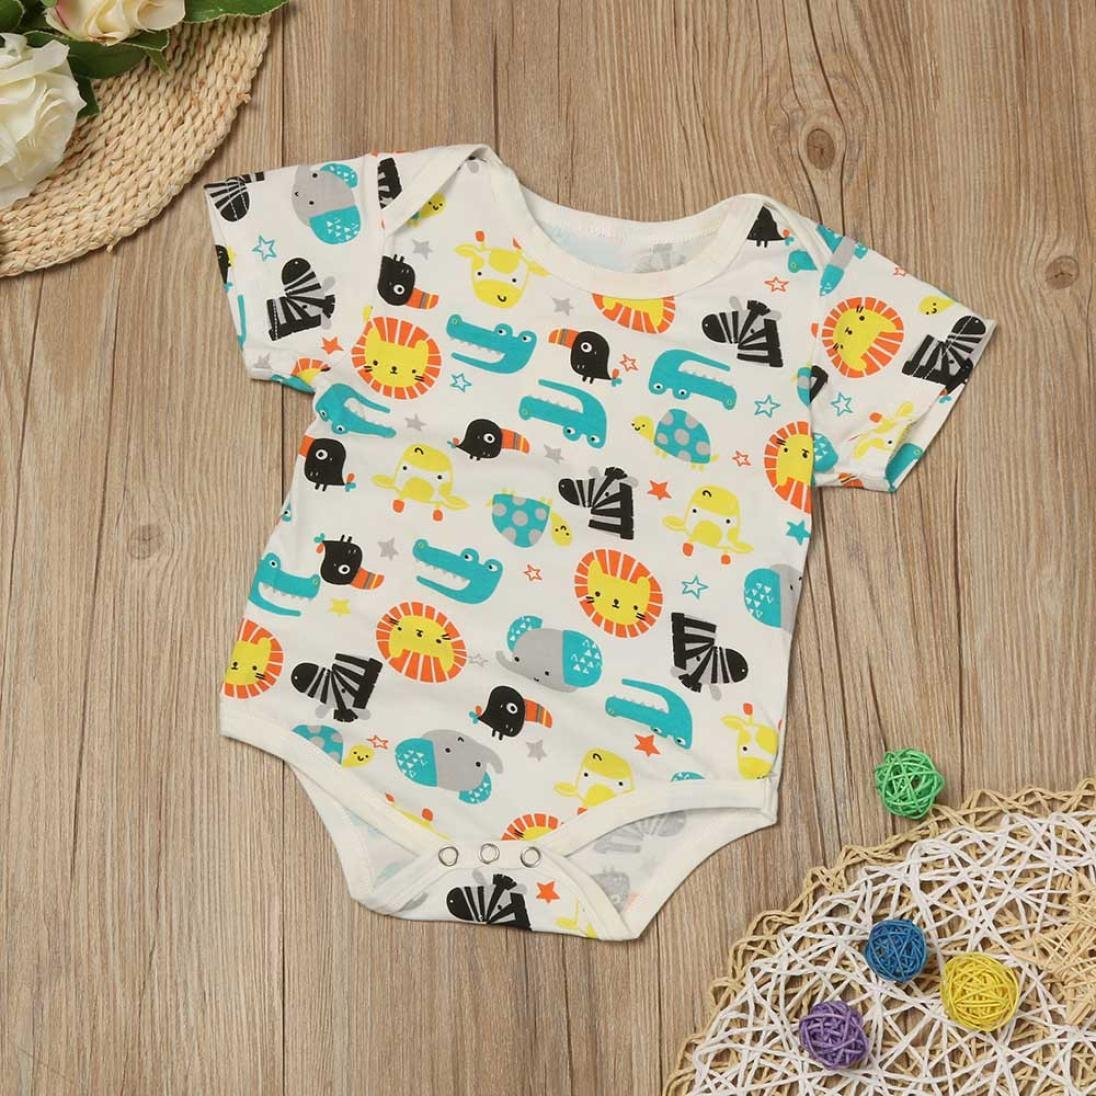 For 0-24 Months Baby,DIGOOD Infant Toddler Baby Girl Boy Zoo Cotton Leopard Romper Jumpsuit Kids Clothes